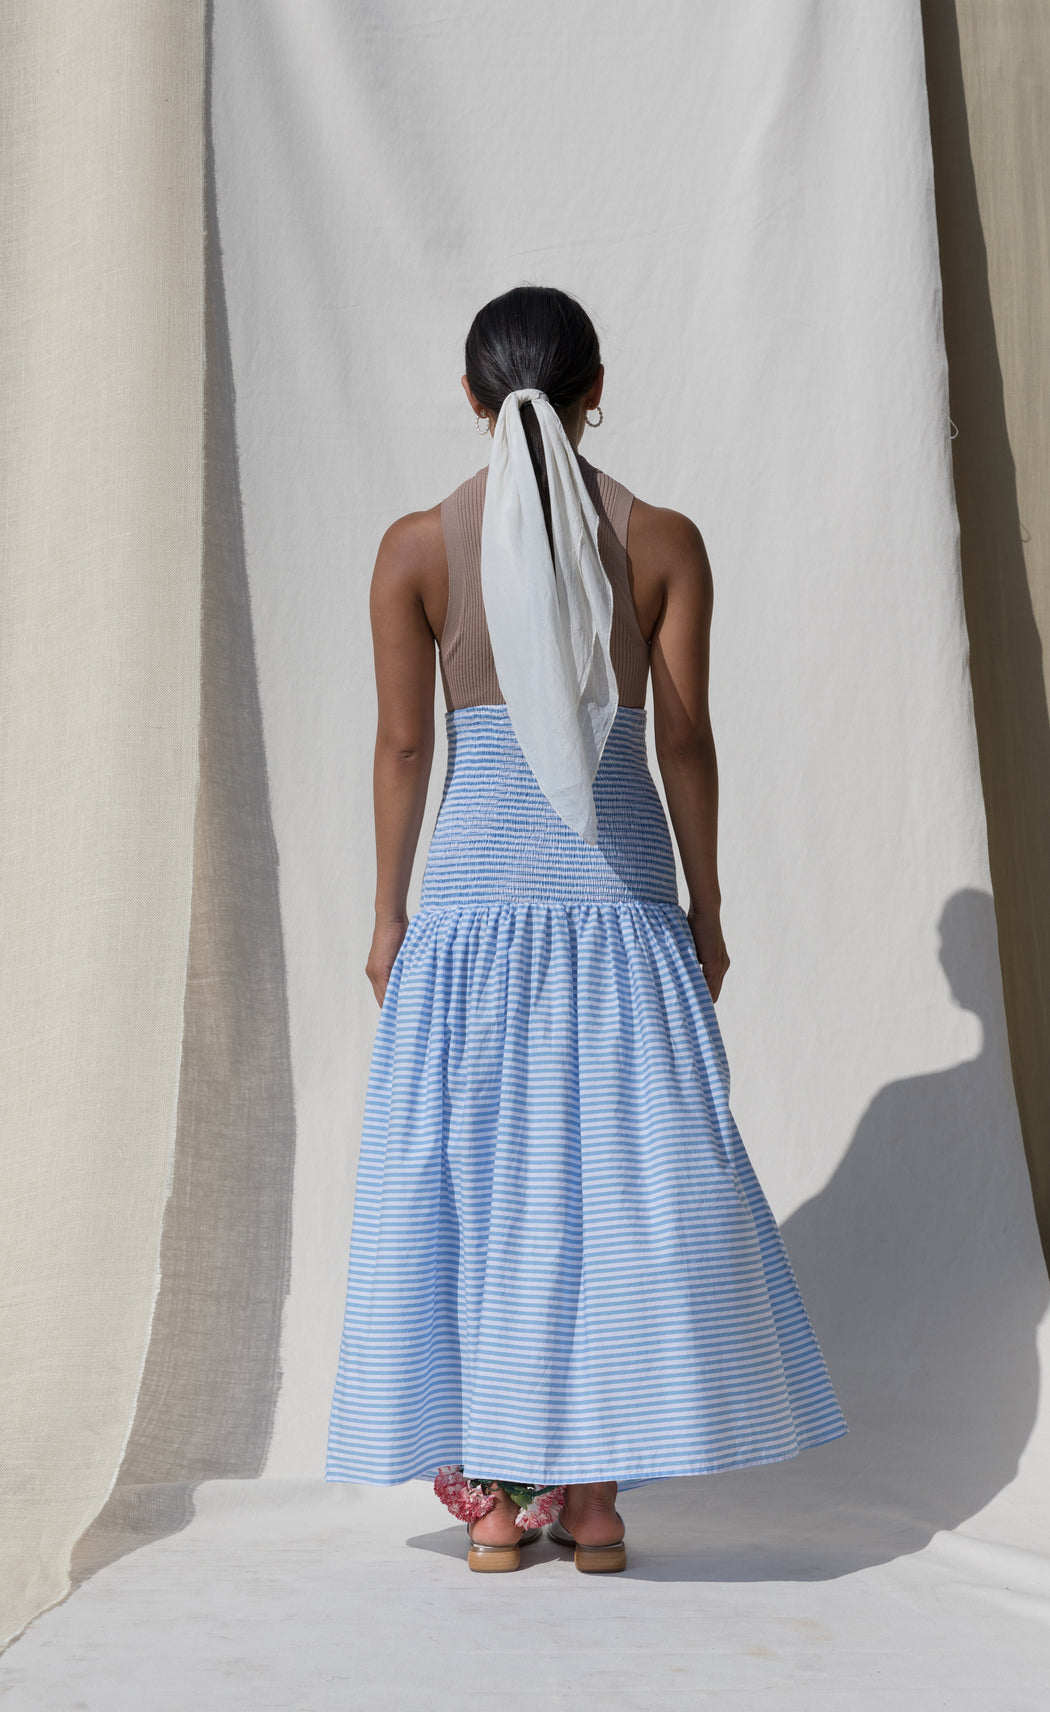 Pondicherry Skirt/Dress - Azure Stripe